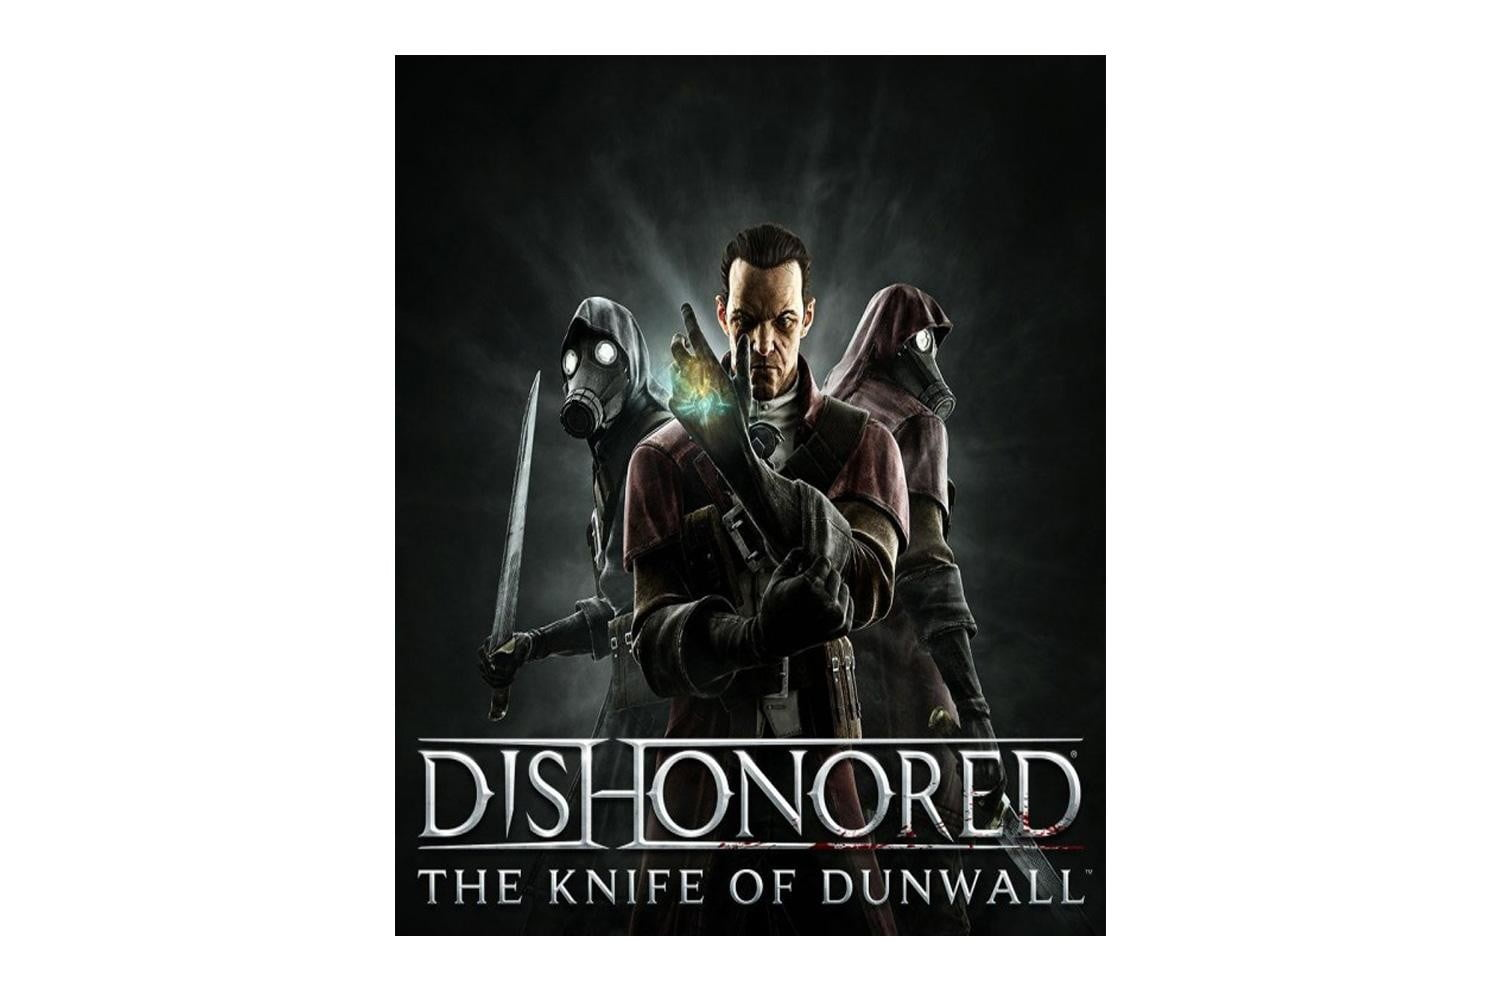 Dishonored-The-Knife-of-Dunwall-cover-art